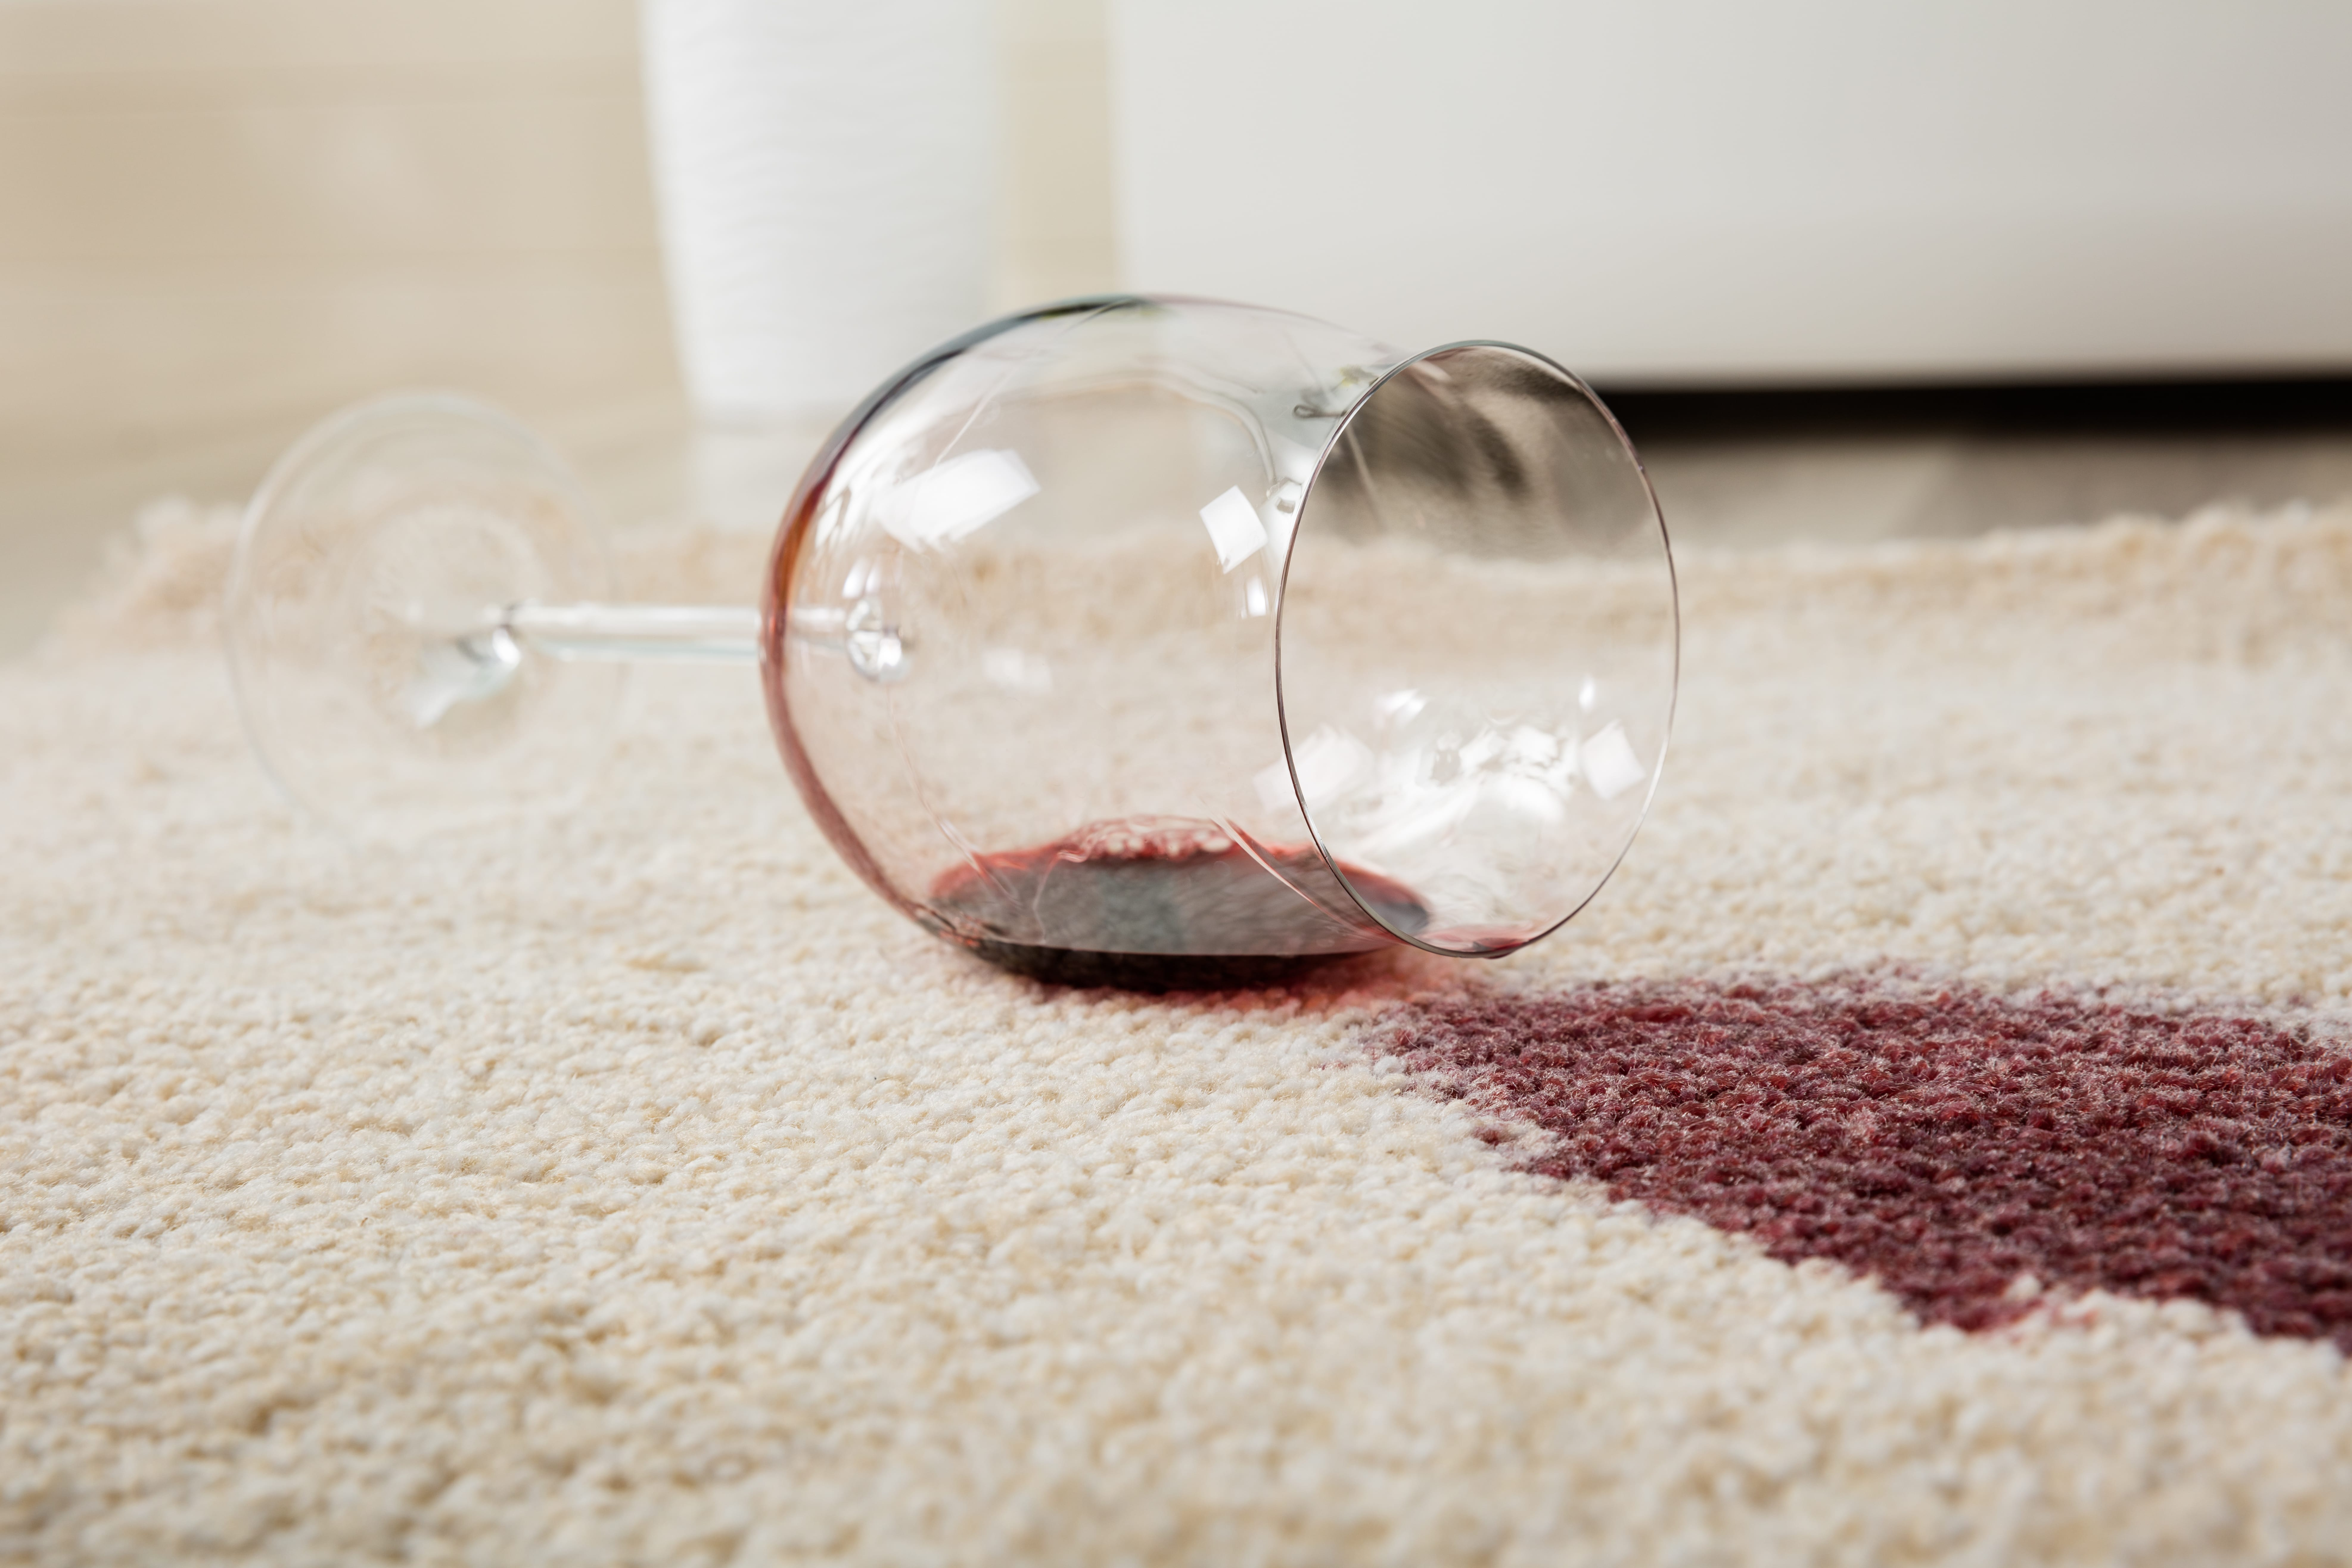 Carpet Stains: Best Practices for Removing Stains